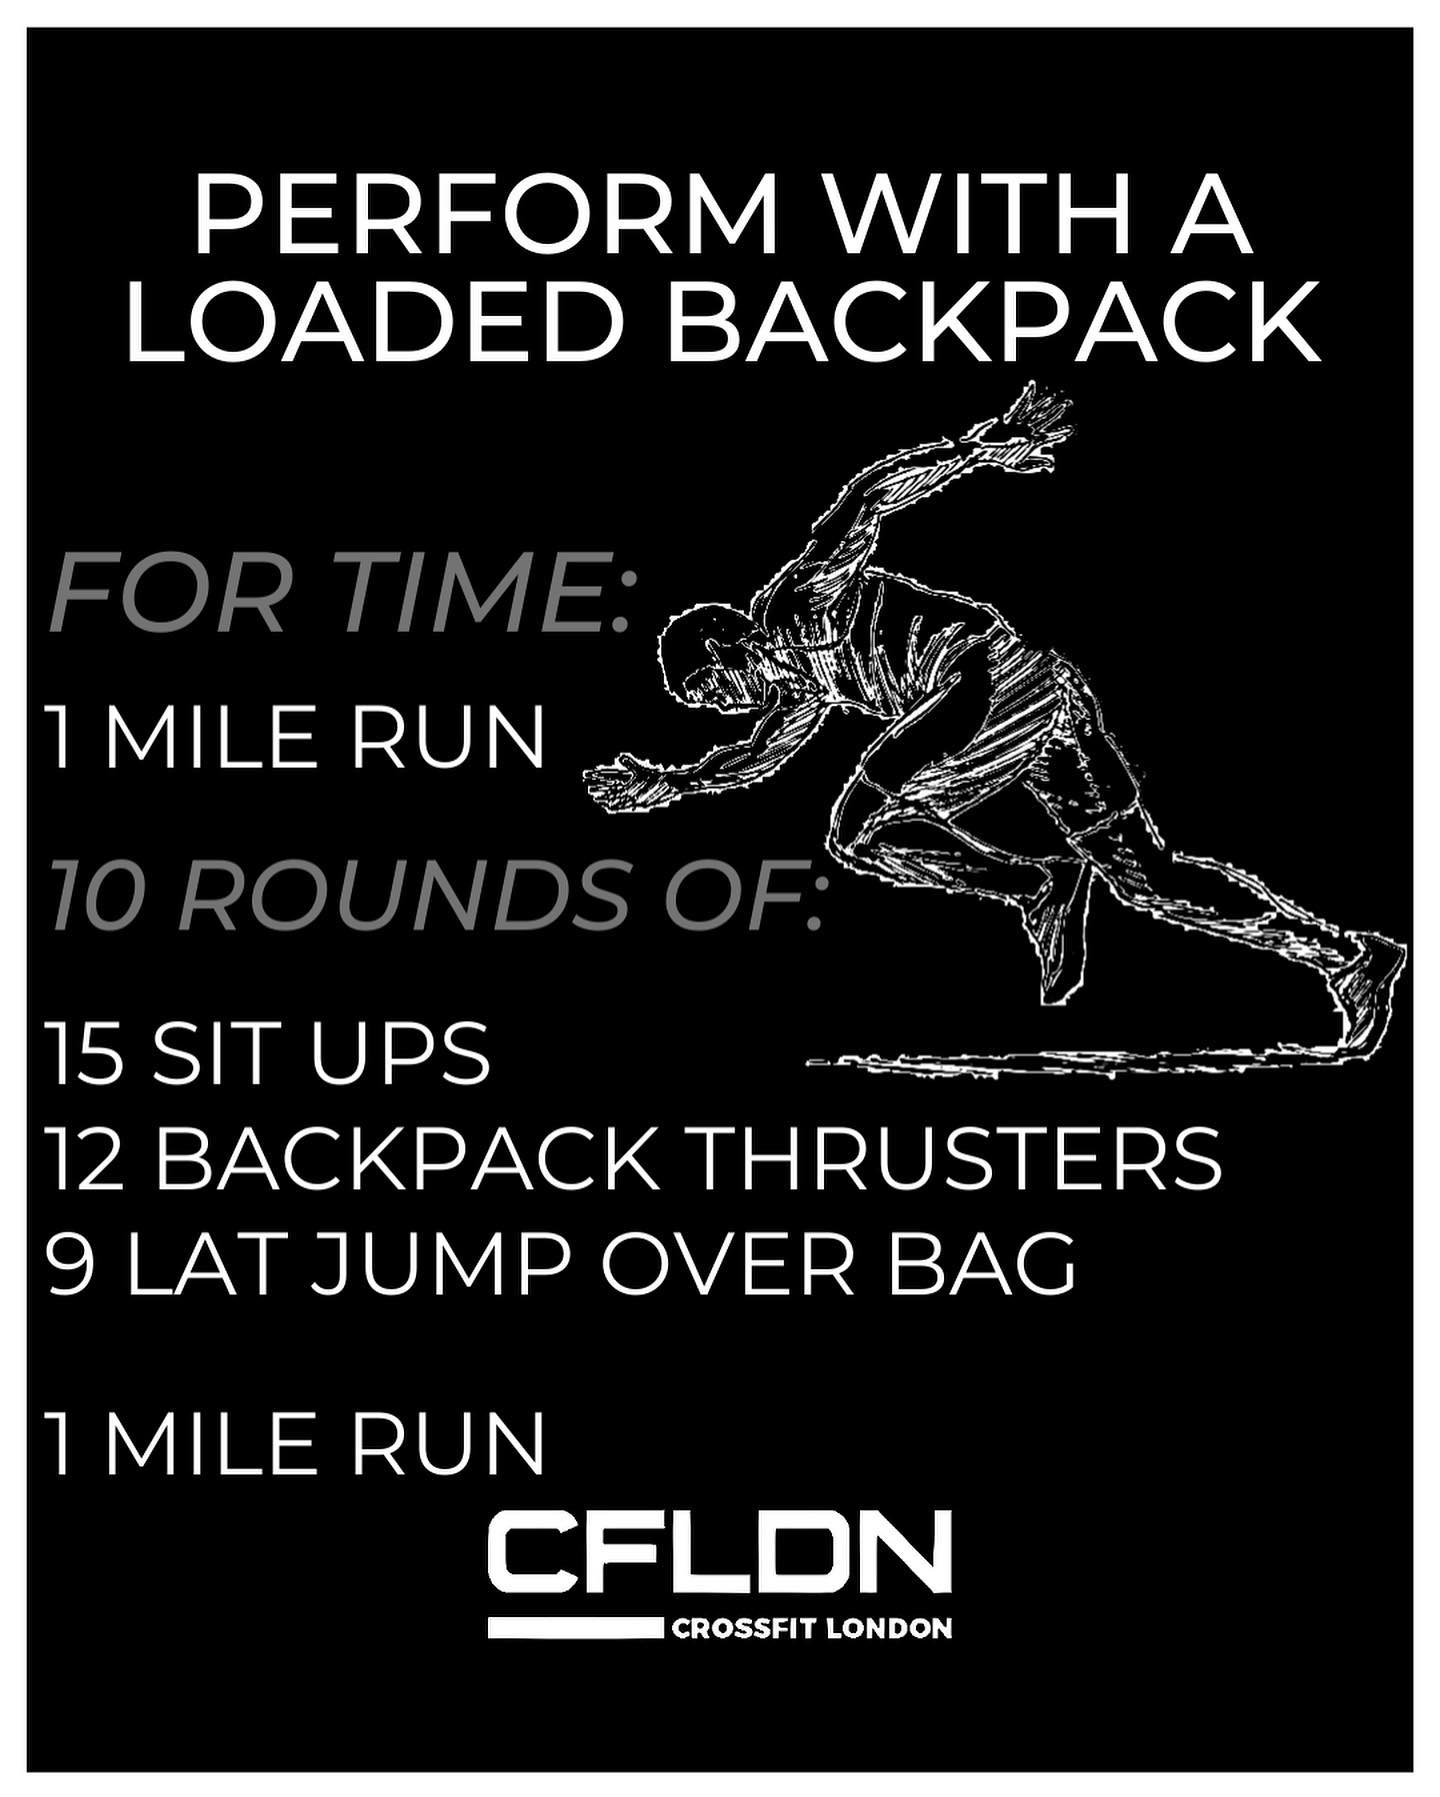 Home workouts:loaded back pack fun